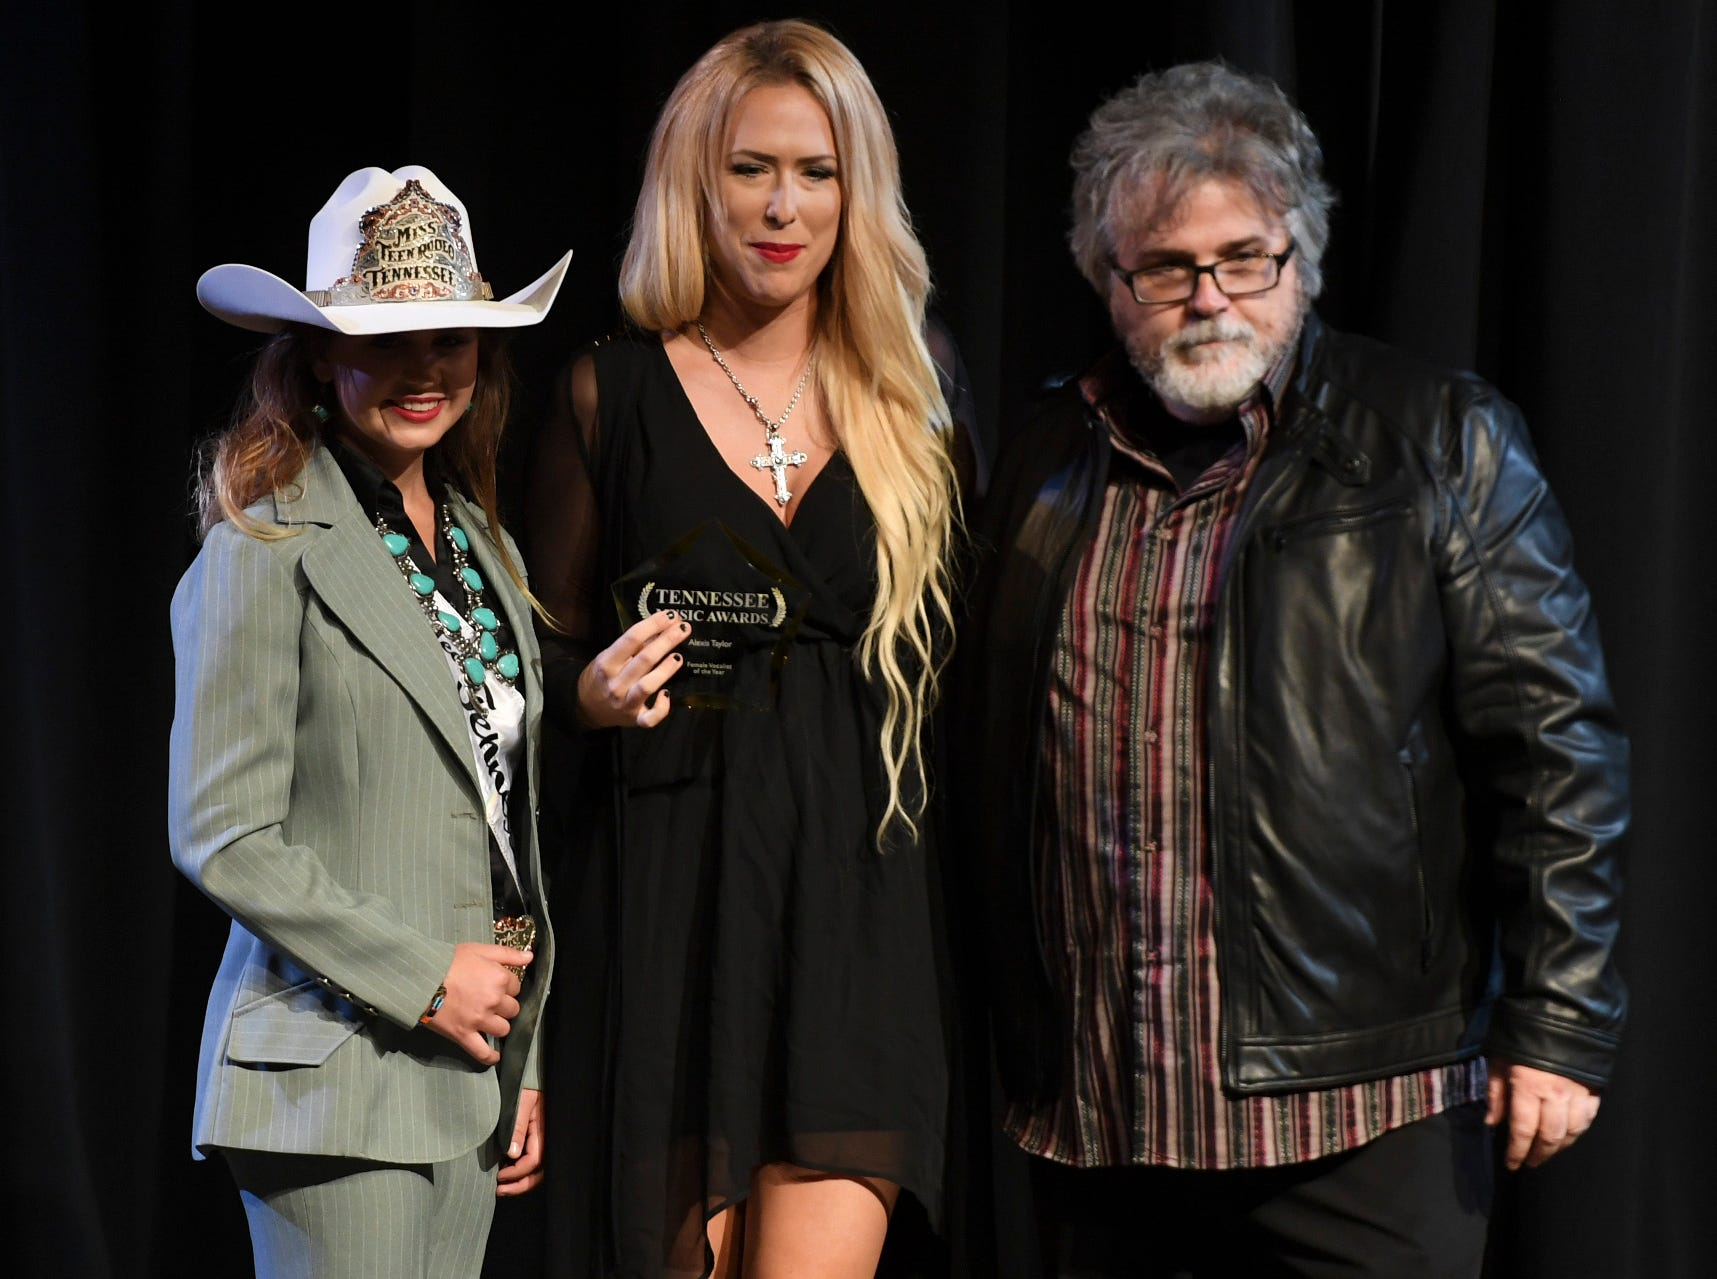 Alexis Taylor received the award for Female Artist of the Year at the 2nd Annual Tennessee Music Awards, Monday, October 8, at University of Memphis Lambuth.